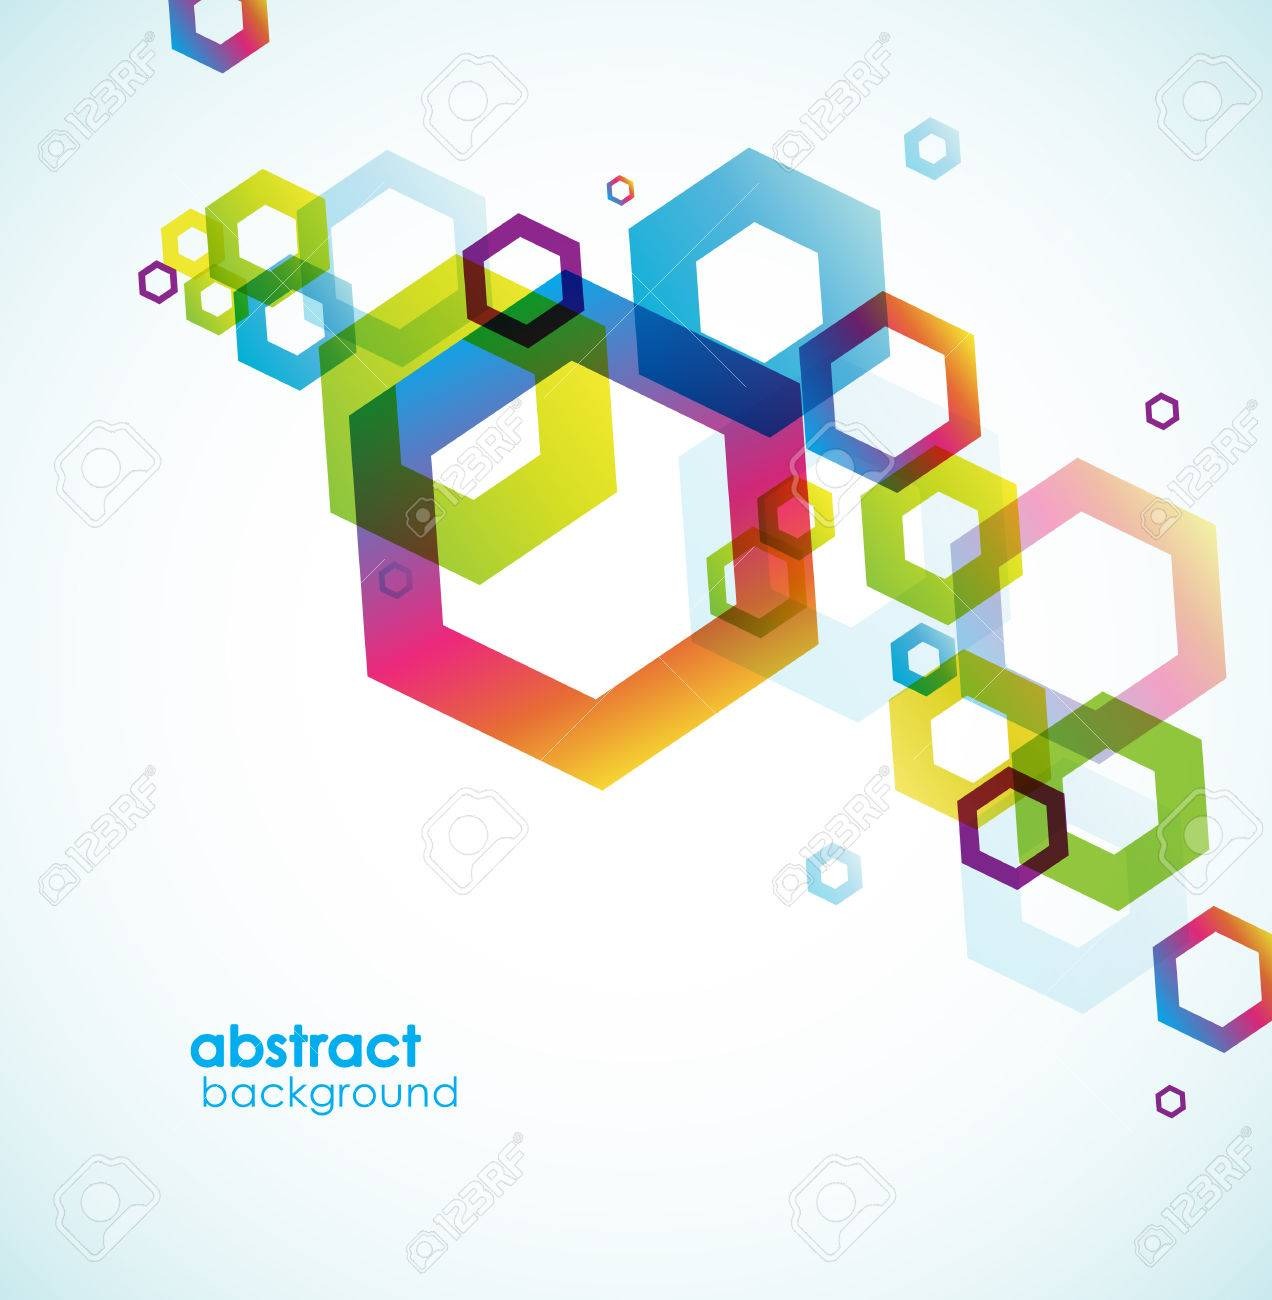 Abstract hexagon background with place for your text. - 62461583